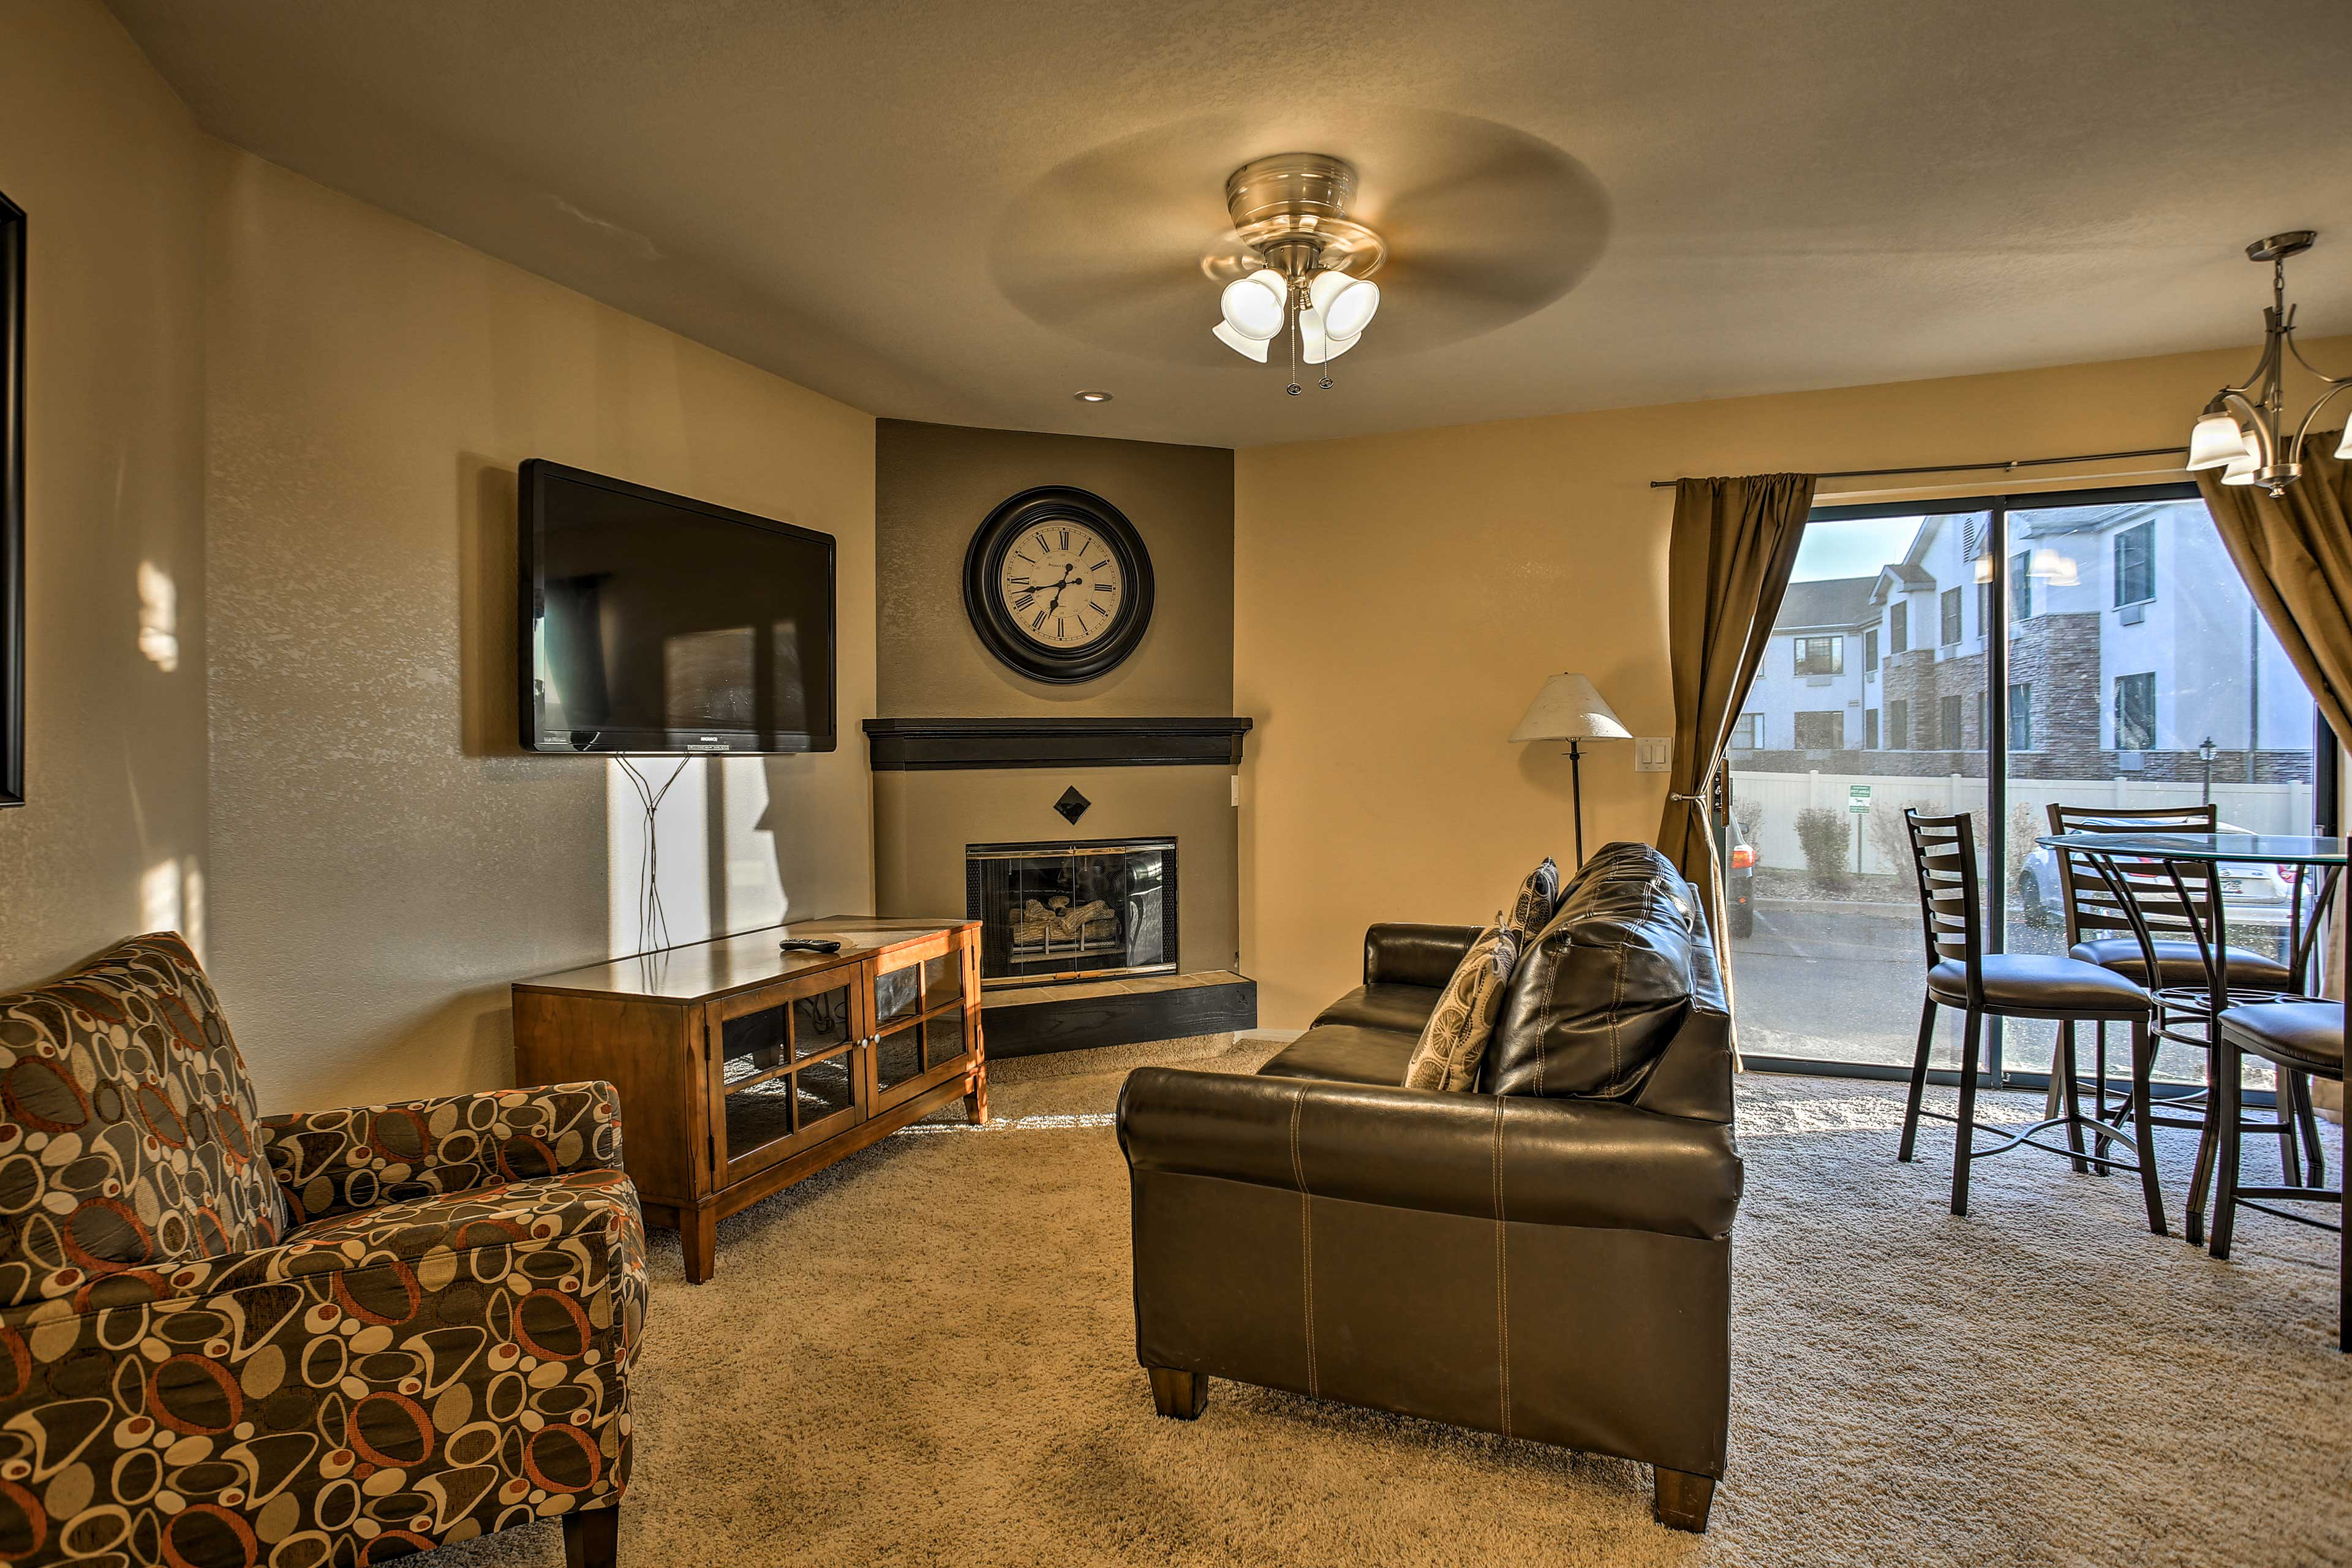 Make yourself at home in this Denver area vacation rental condo!